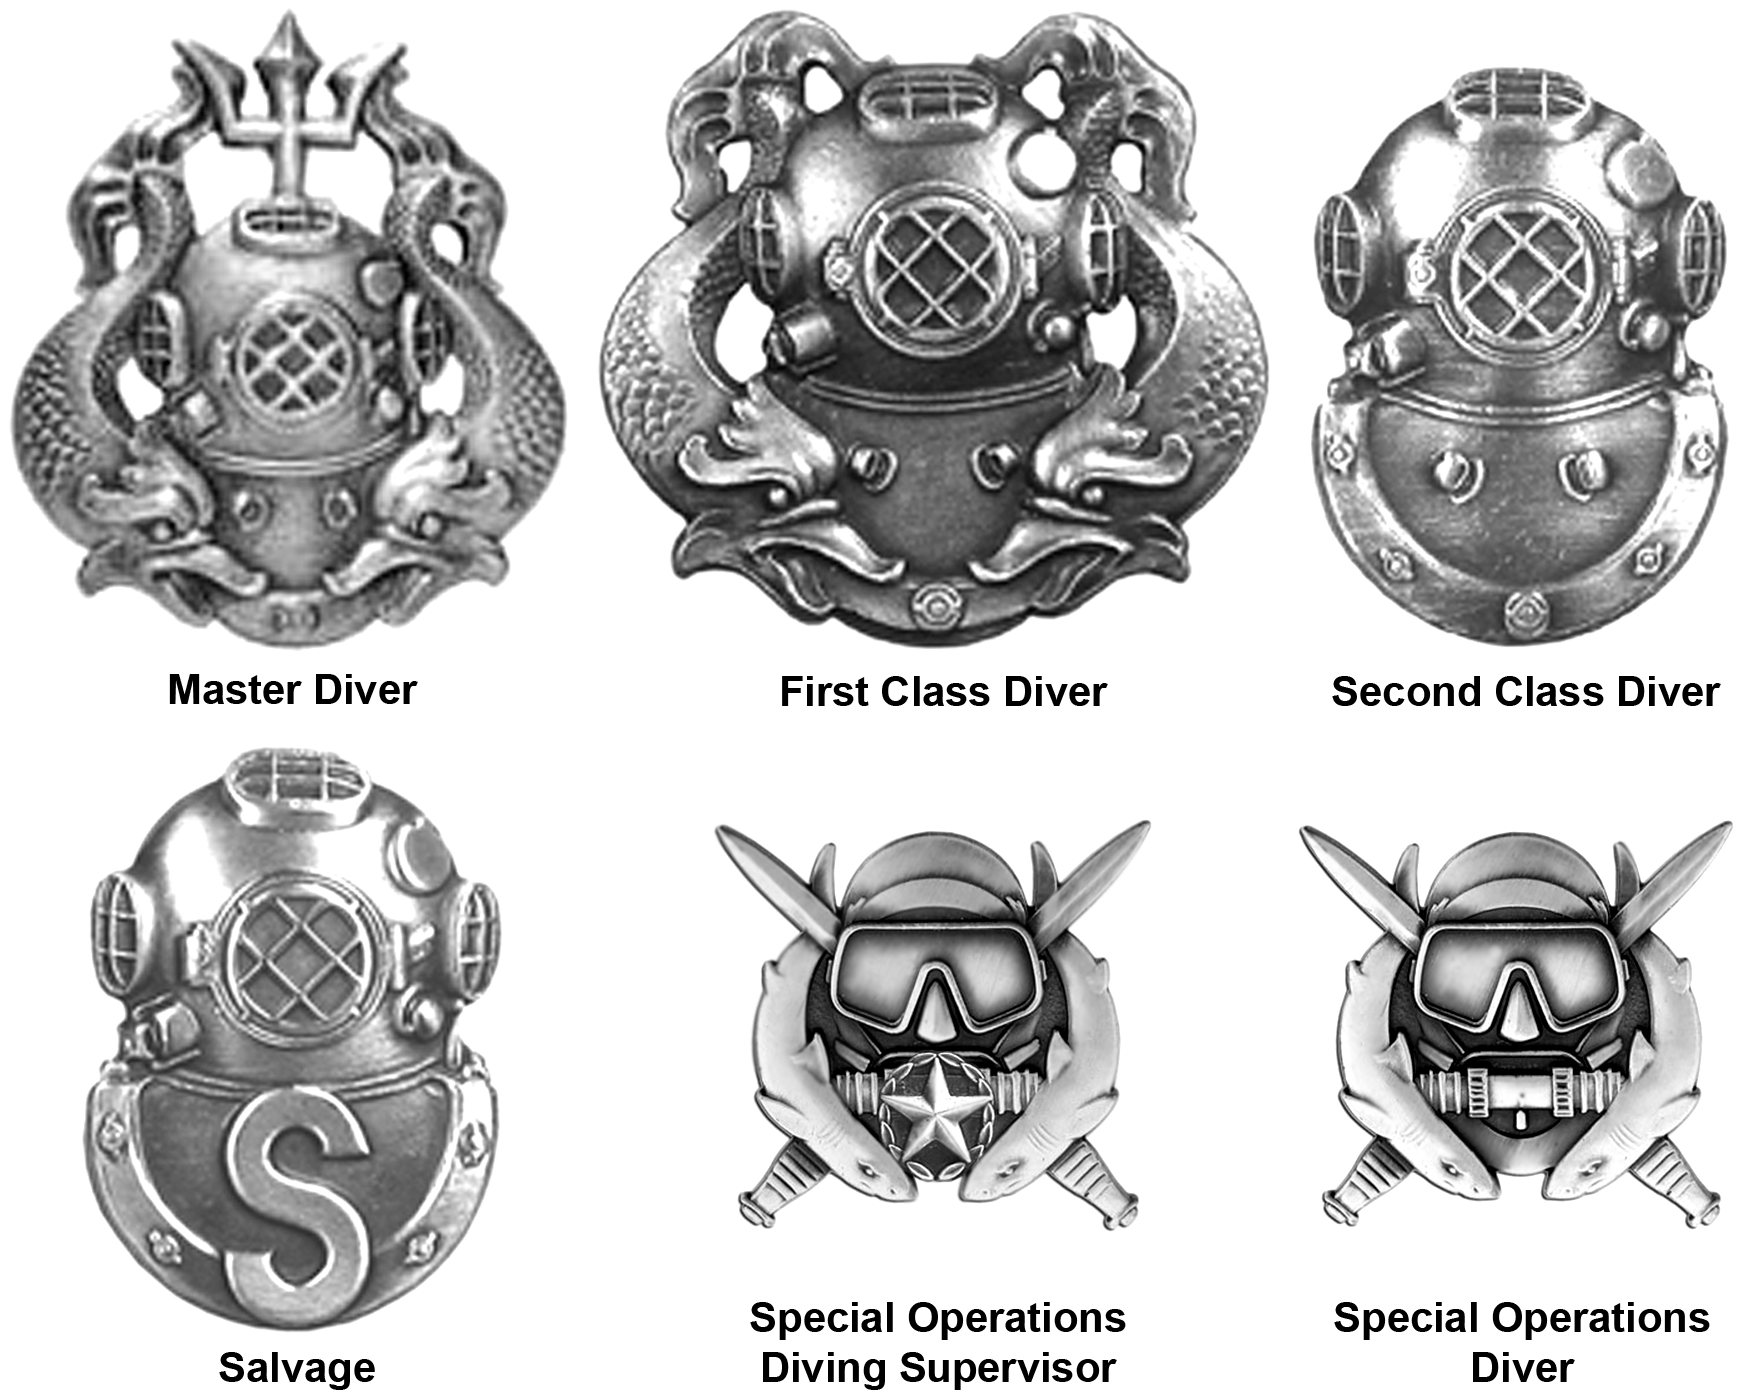 Pin by Catherine Chambers on Military | Deep sea diver, Sea diving